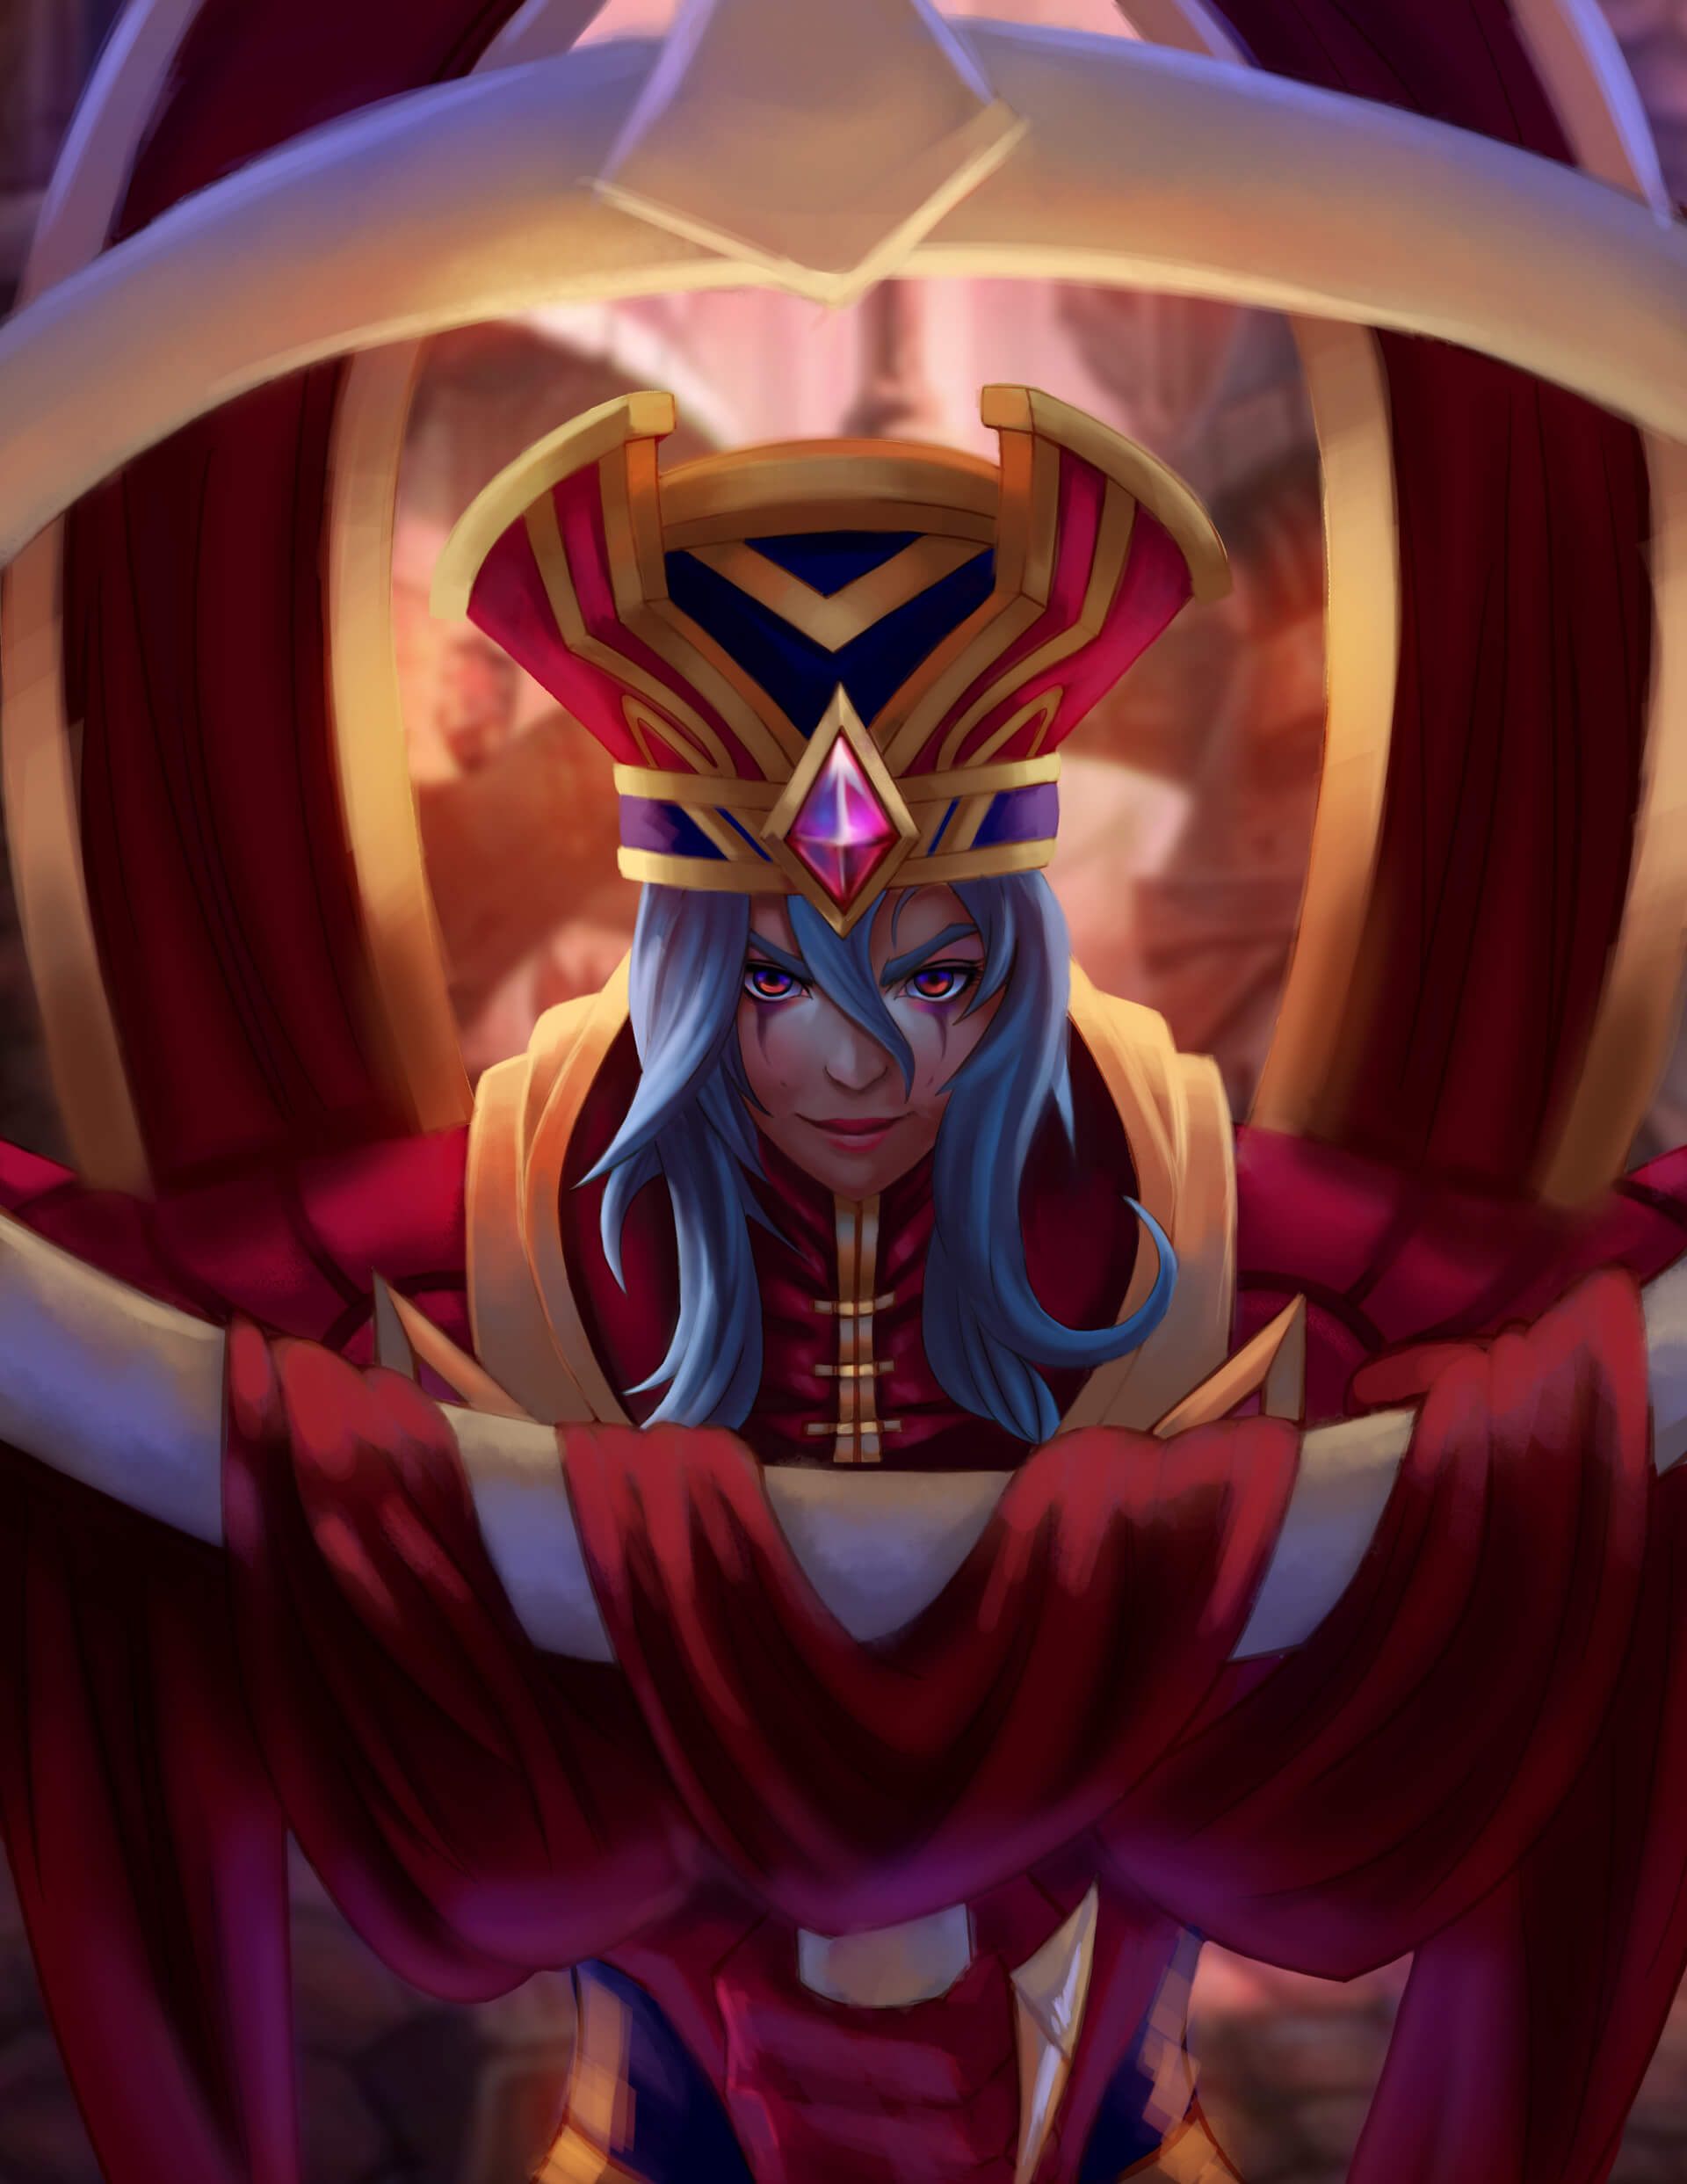 sally whitemane looking good